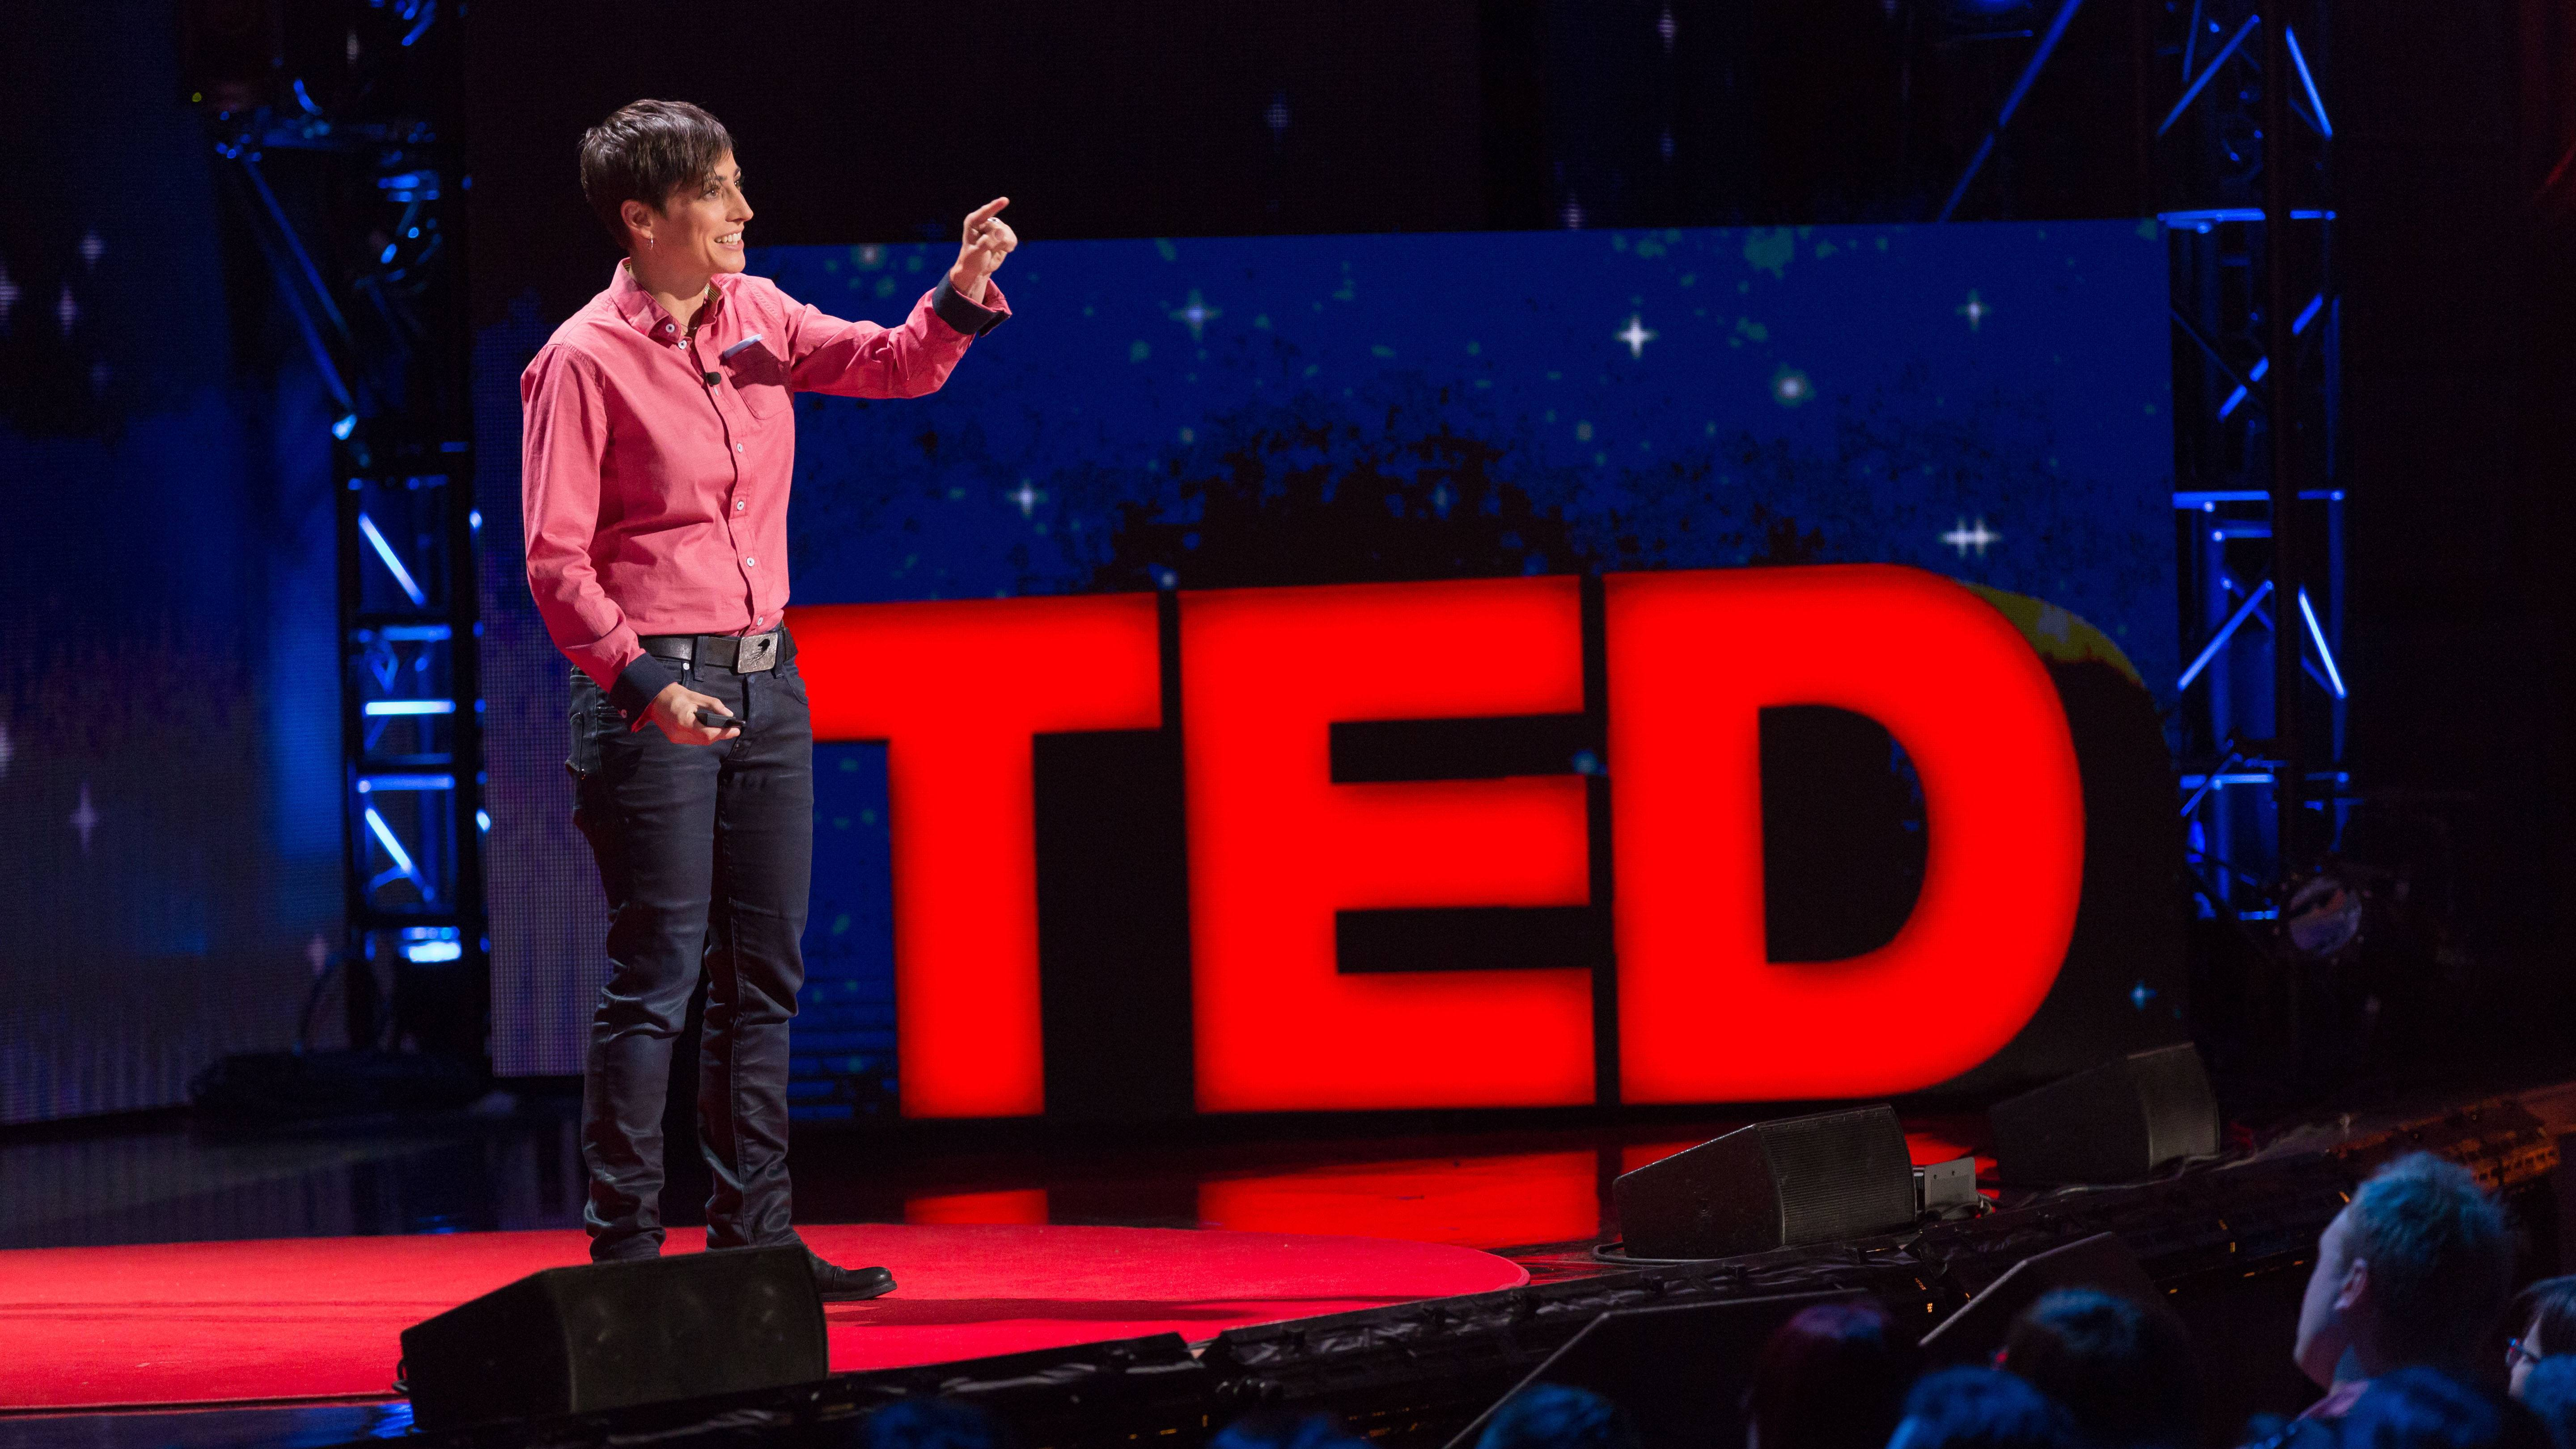 Ted Talks Science And Wonder Premieres March 30 On Oeta Hd